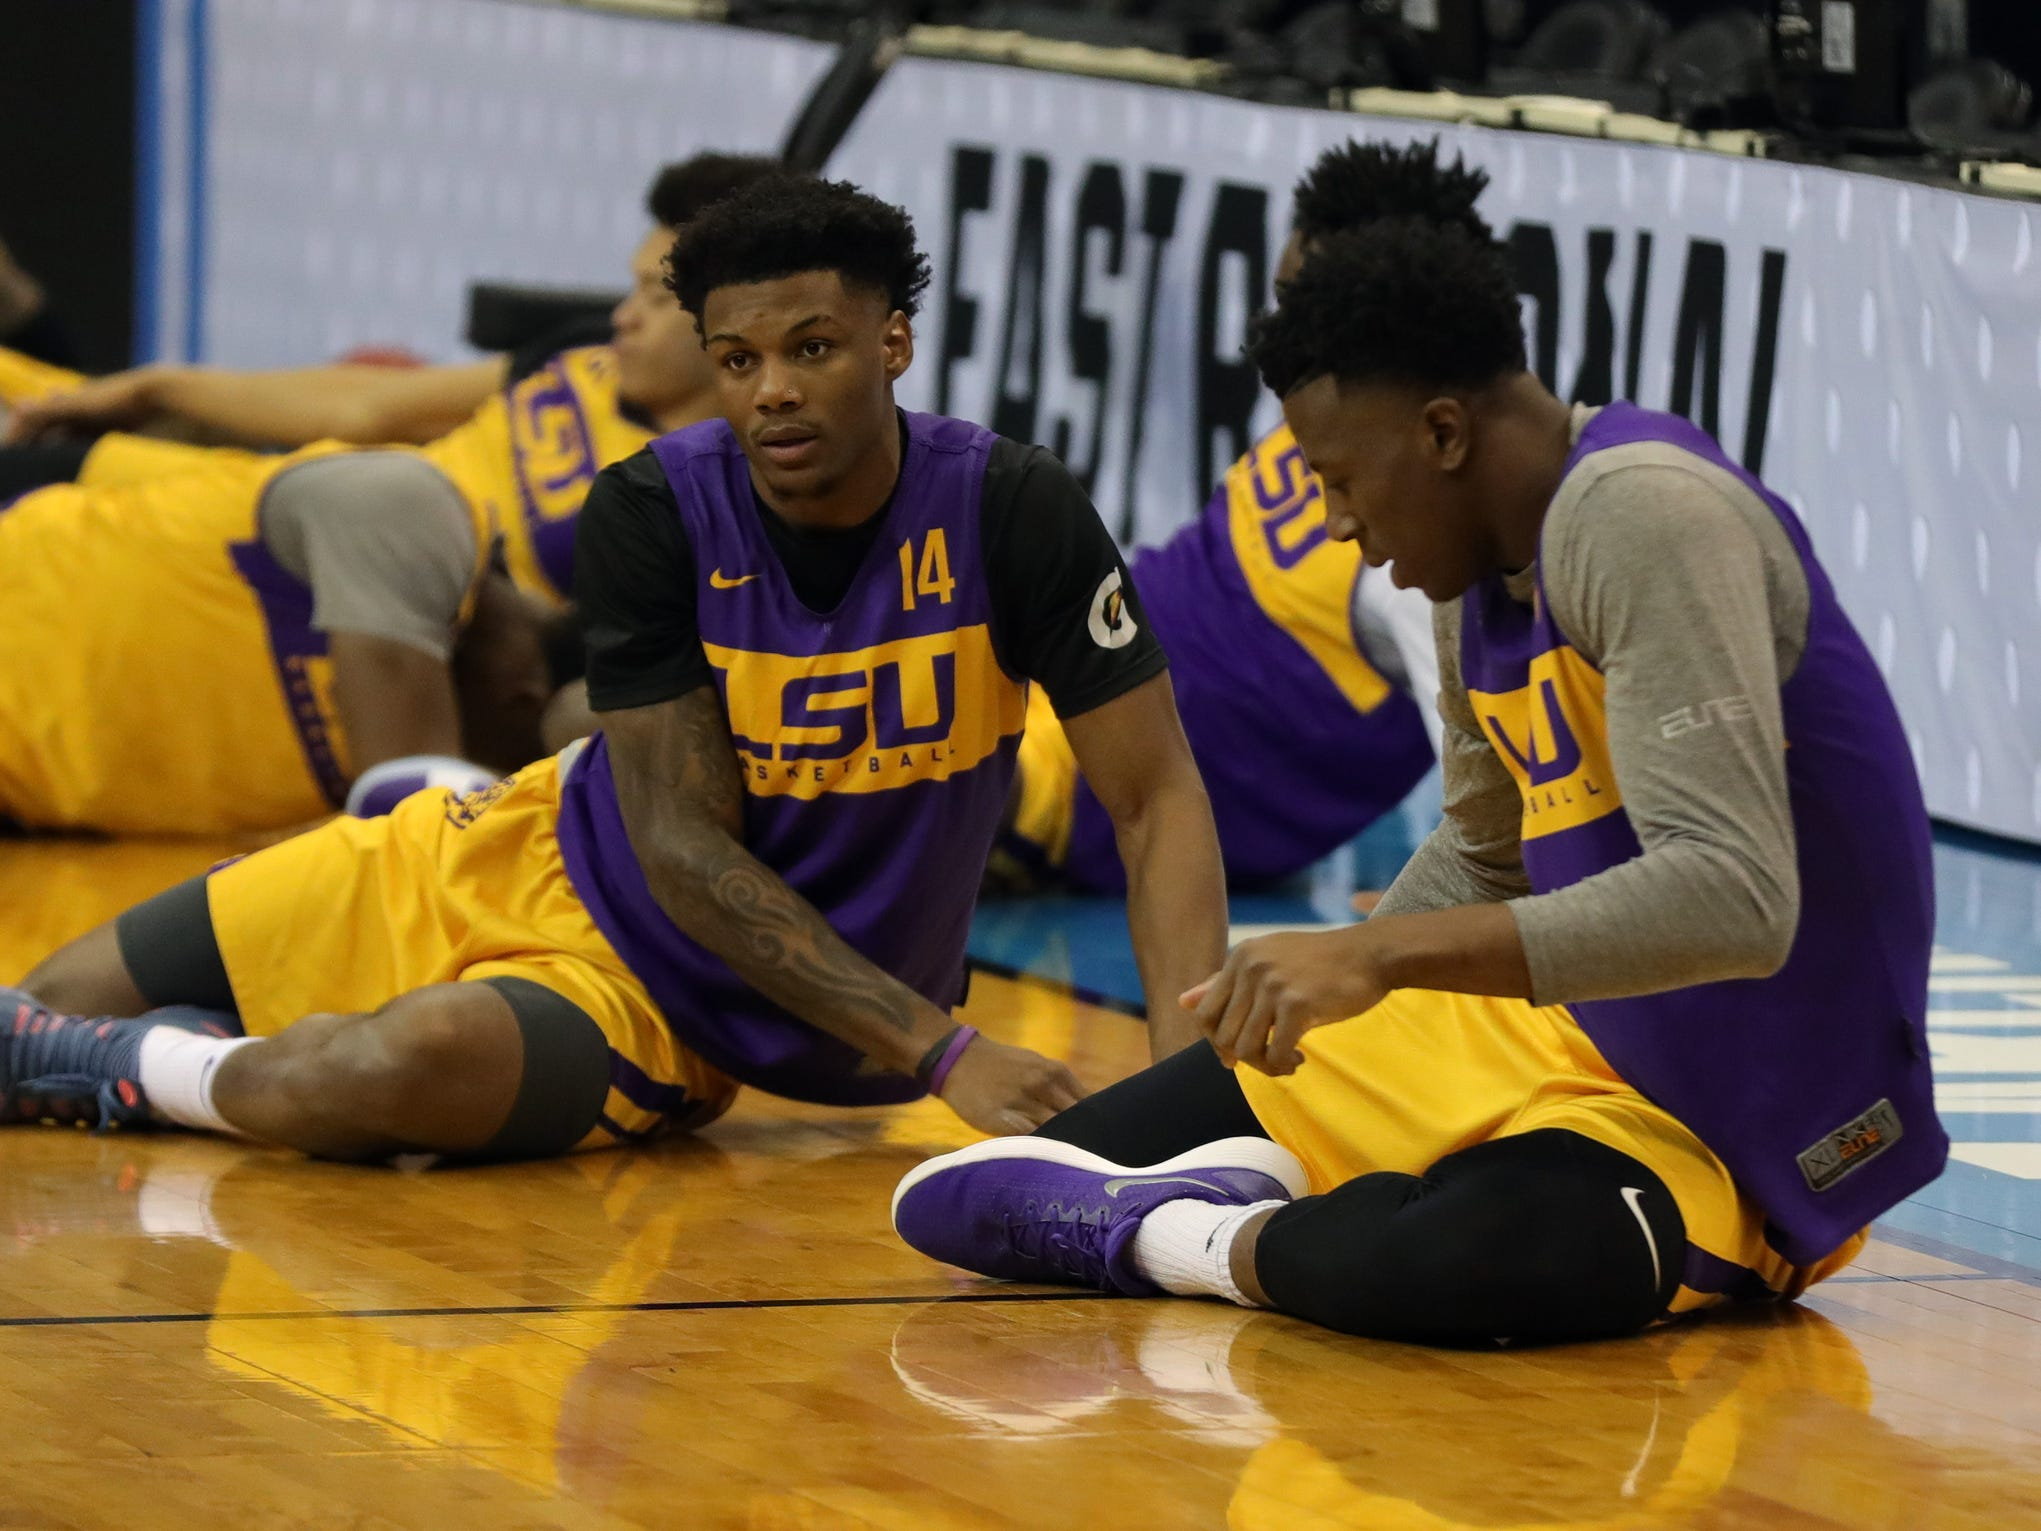 LSU forward Marlon Taylor practices for their Sweet 16 game against Michigan State, Thursday, March 28, 2019 at Capital One Arena in Washington, D.C.